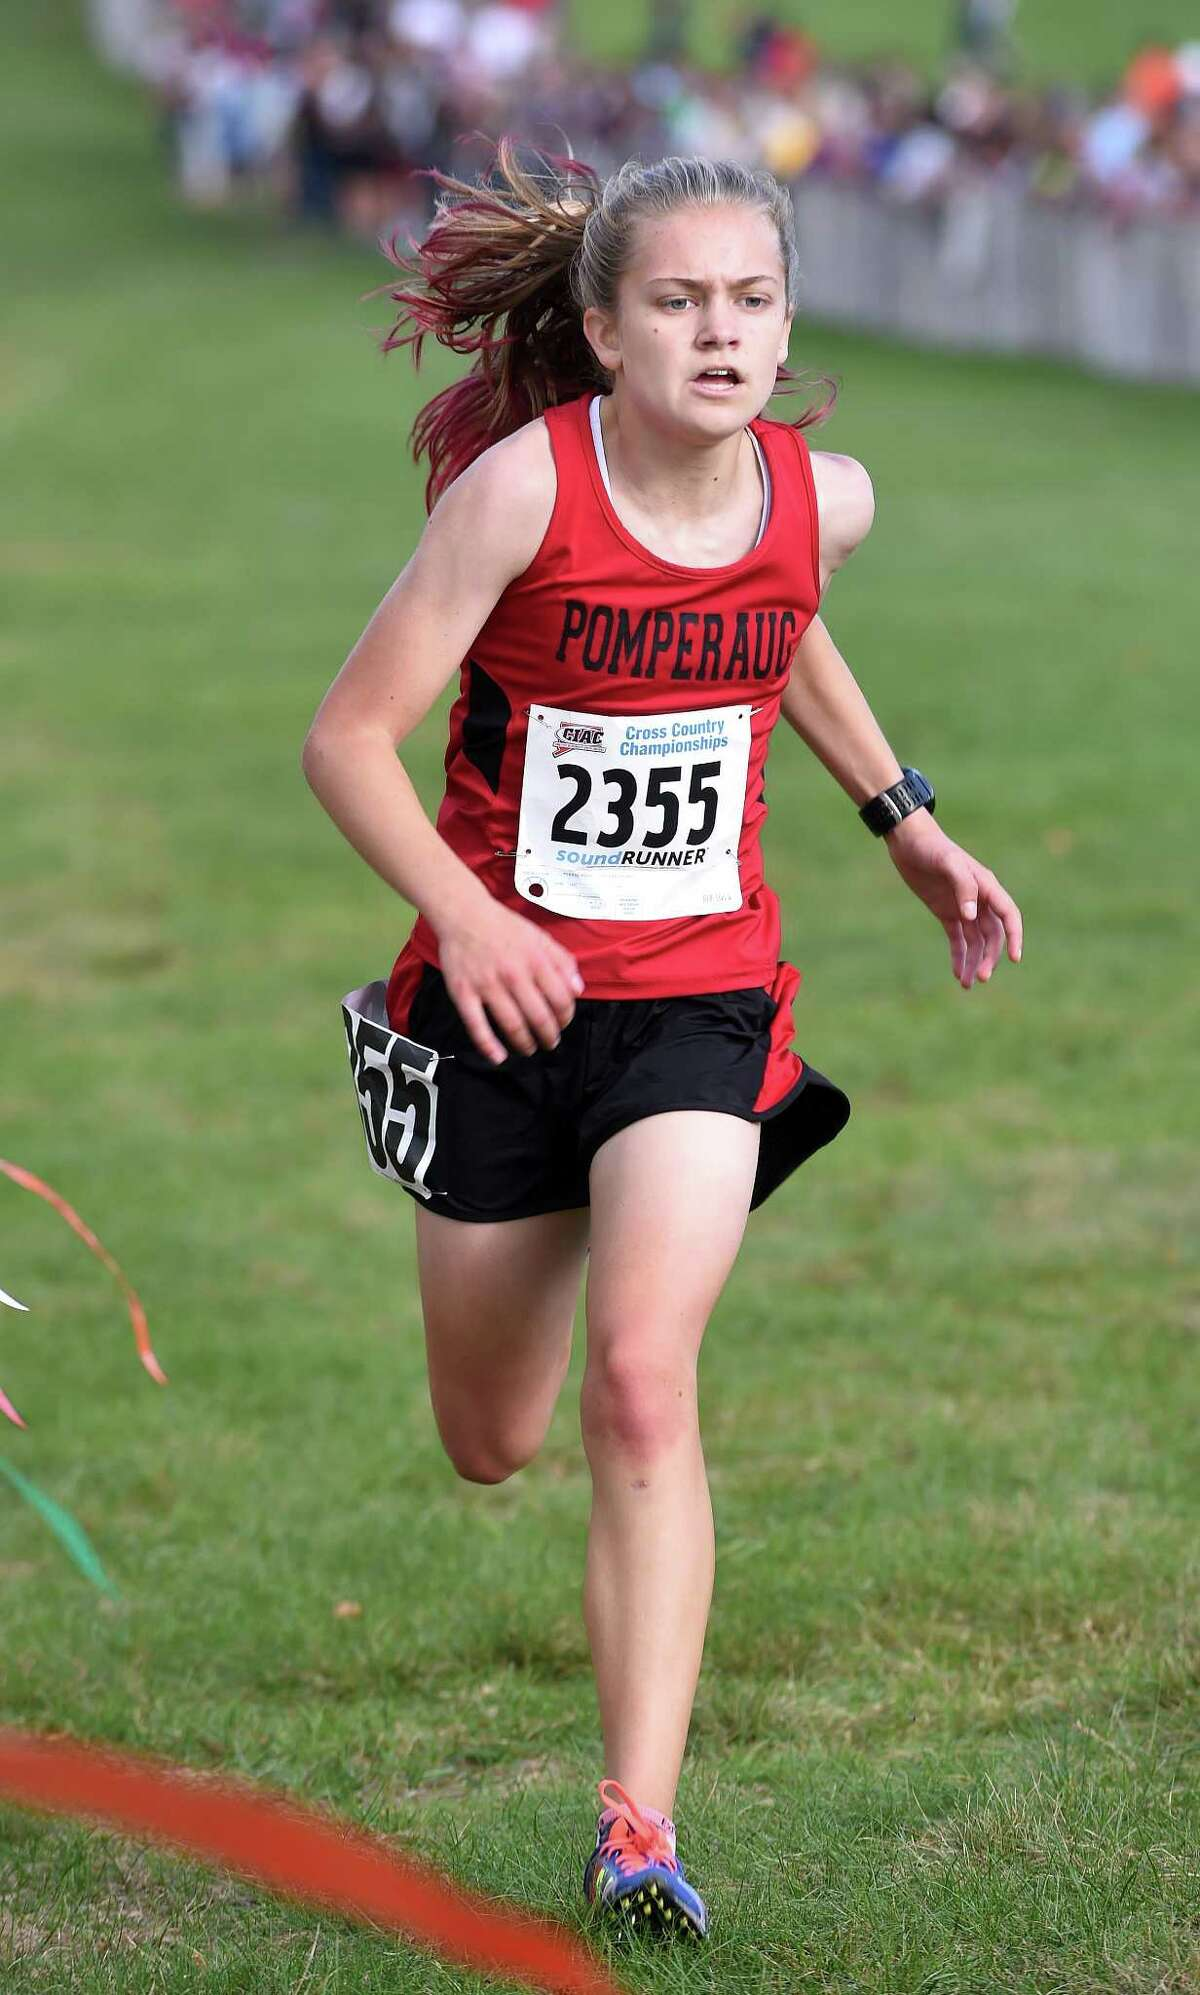 Katherine Wiser of Pomperaug nears the finish line placing second in the 2017 CIAC Fall Championship Girls Cross Country race in Manchester on November 3, 2017.